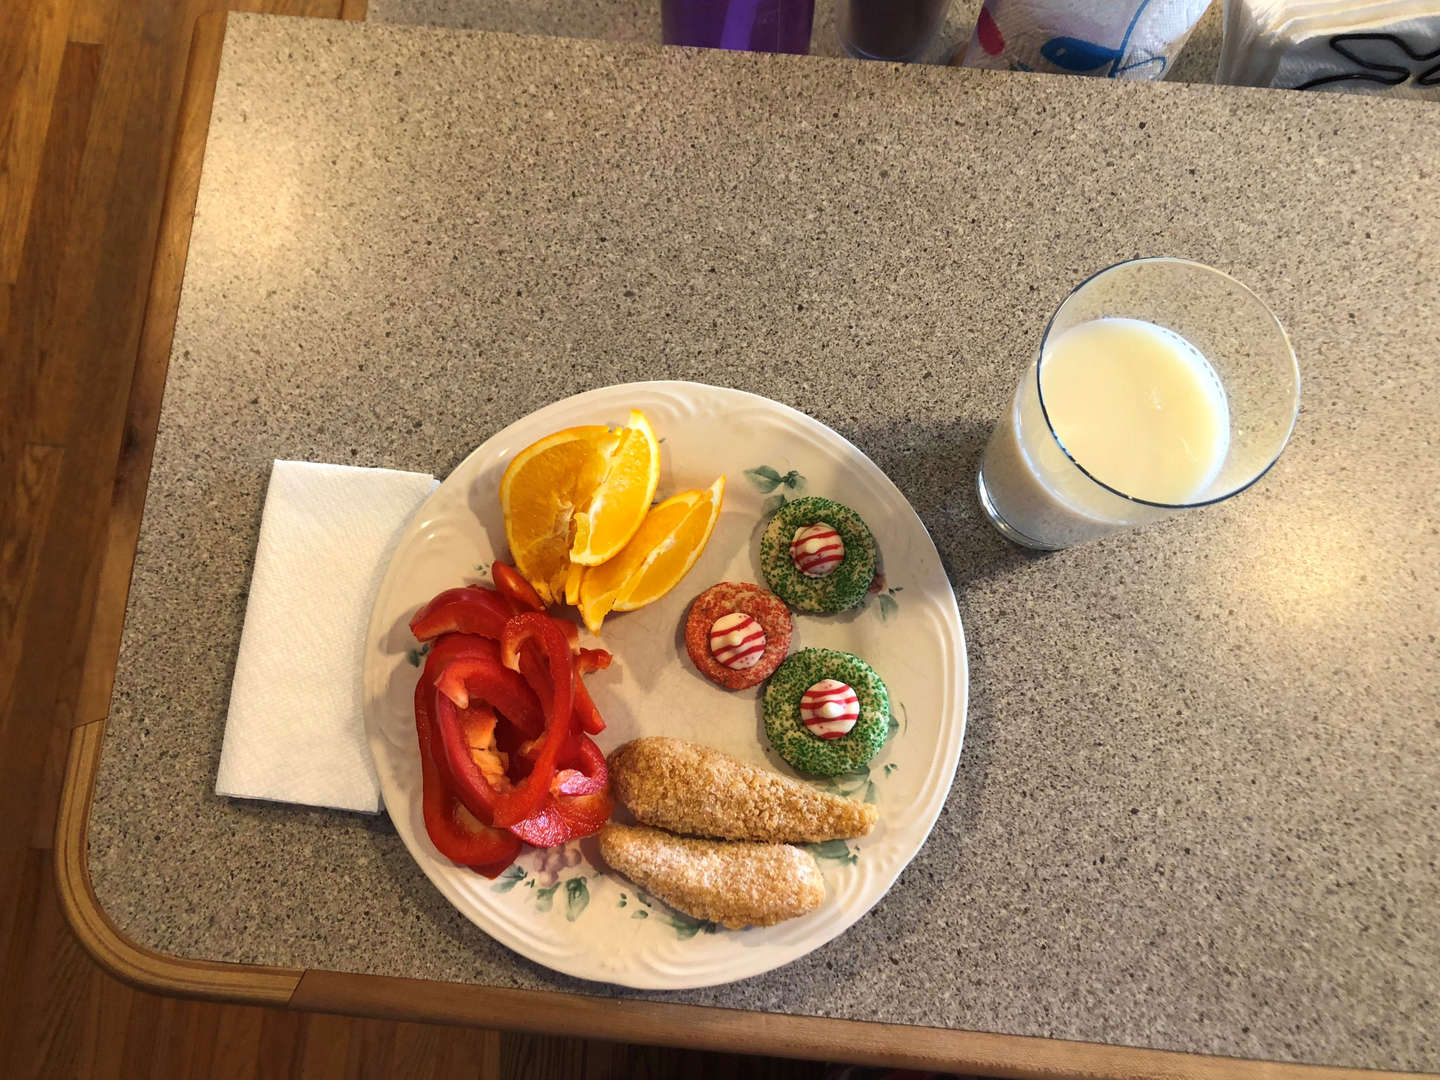 Red peppers, chicken tenders, oranges, milk and cookies (sweet treat on occasions)